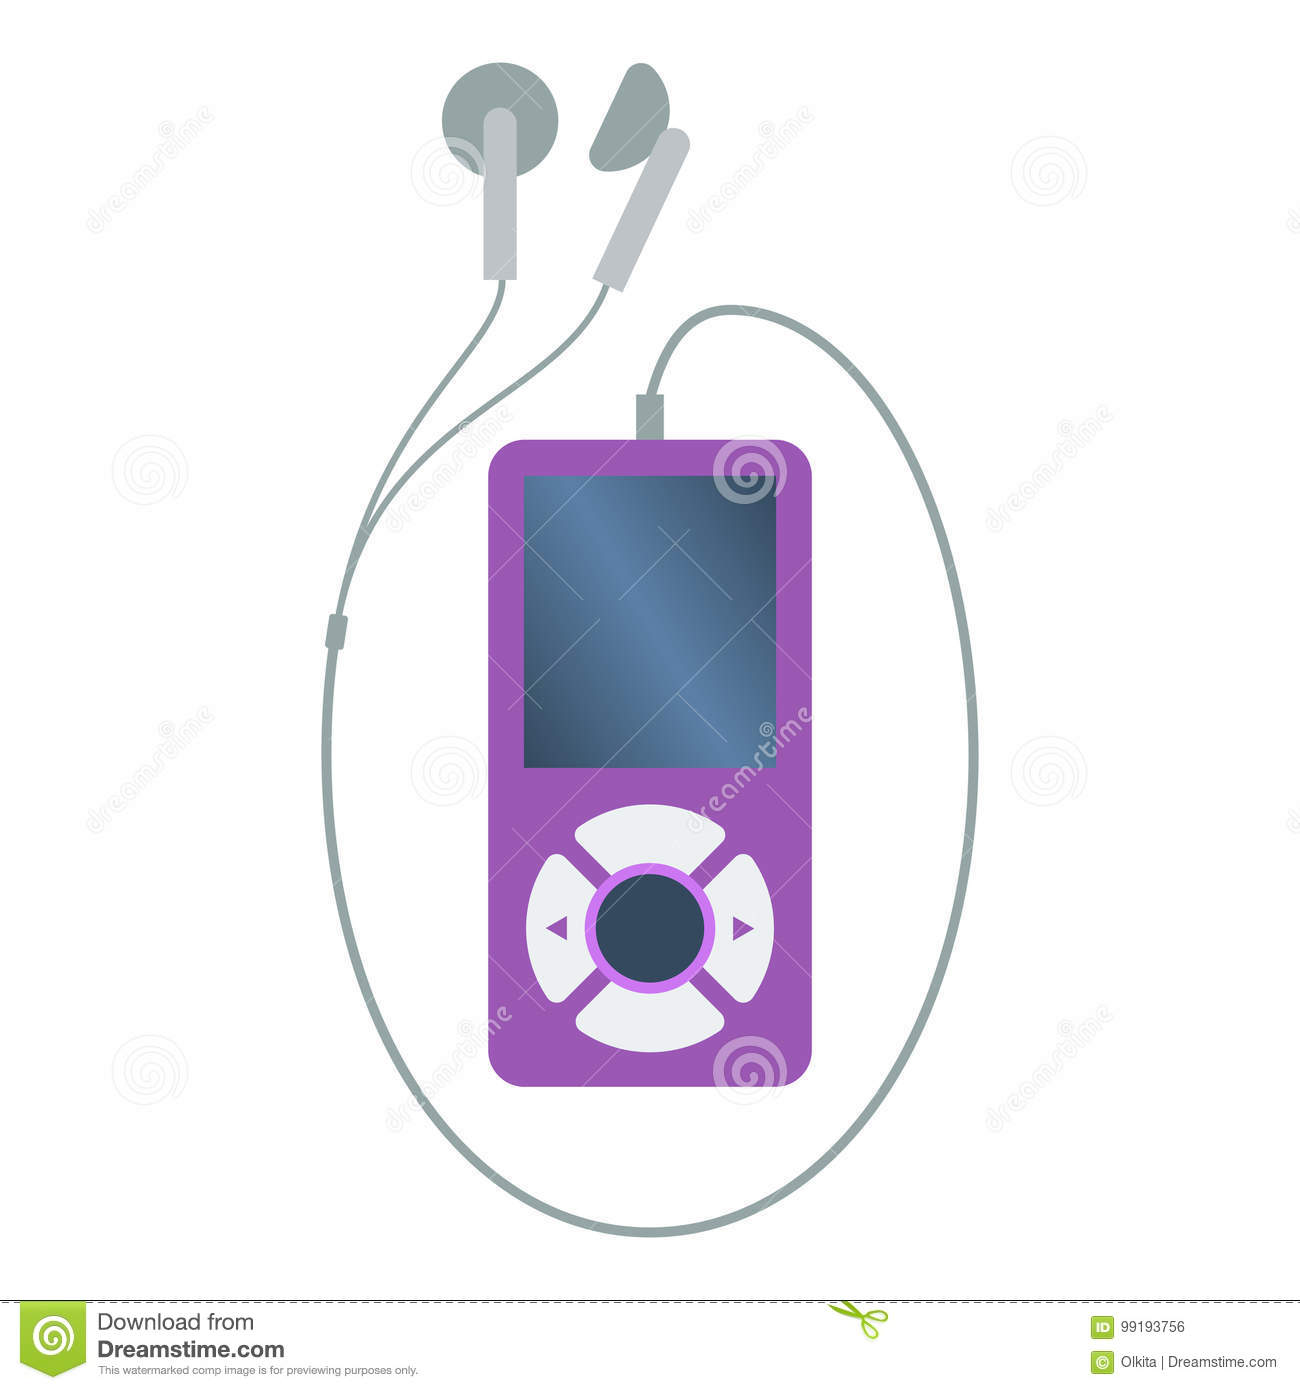 Isolated colored purple mp3 music player with earphones on white background. Flat design icon.